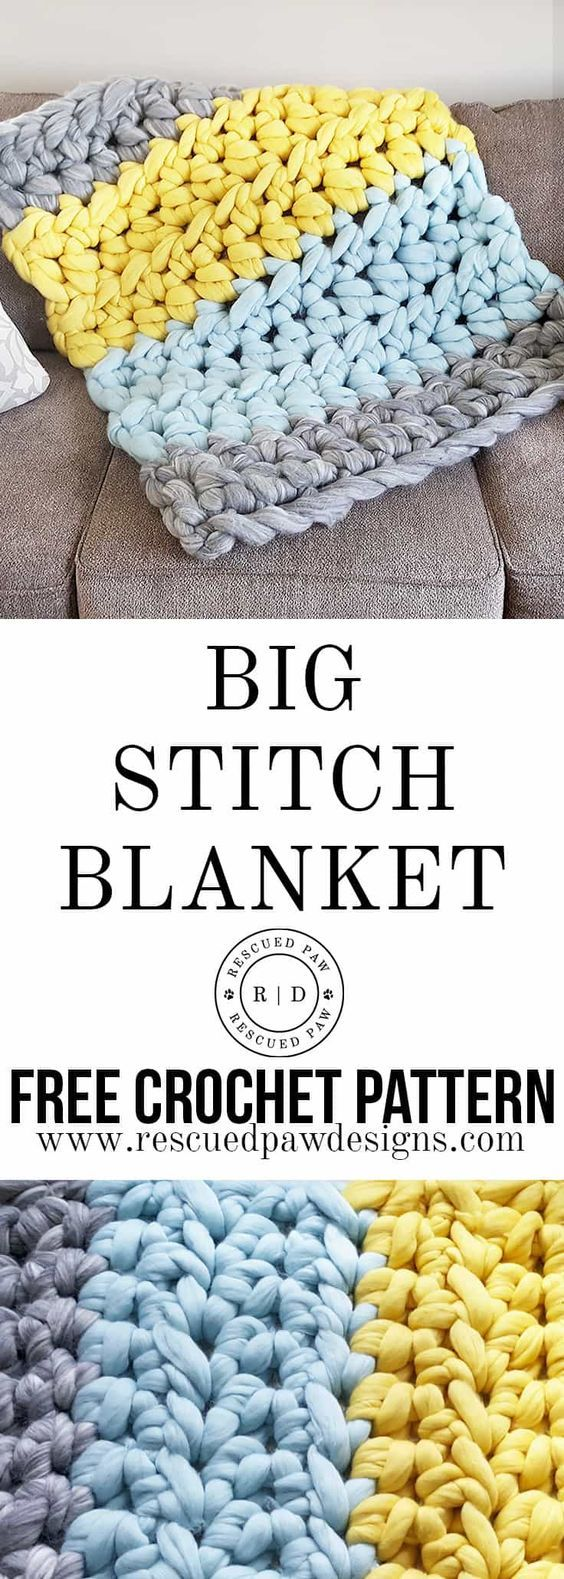 Big Stitch Extreme Crochet Blanket Pattern | soon | Pinterest ...